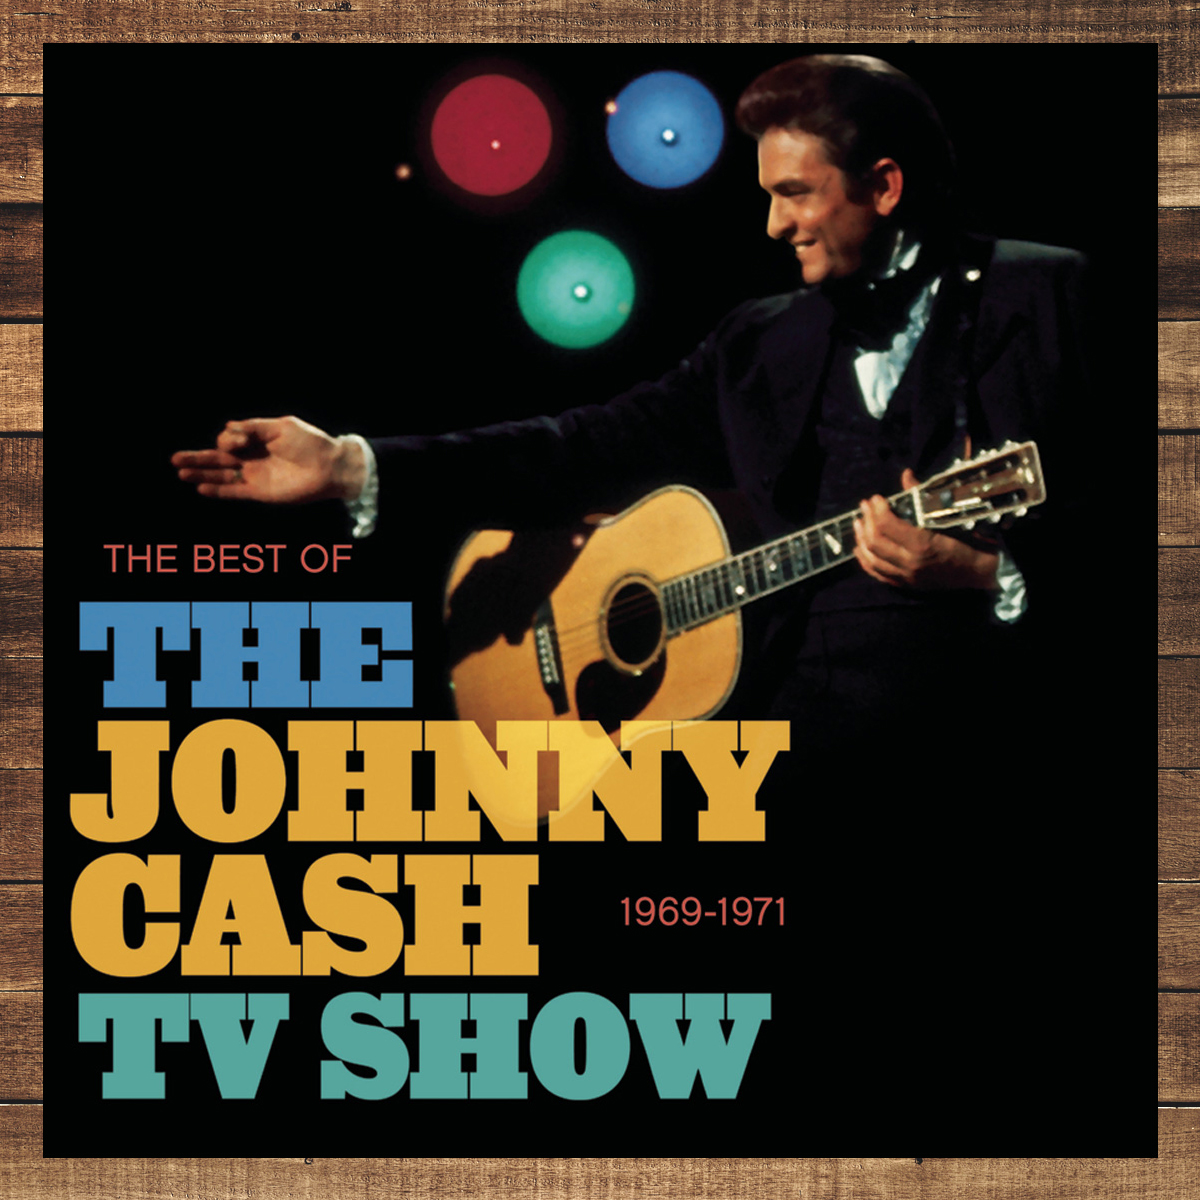 The Best Of The Johnny Cash TV Show CD